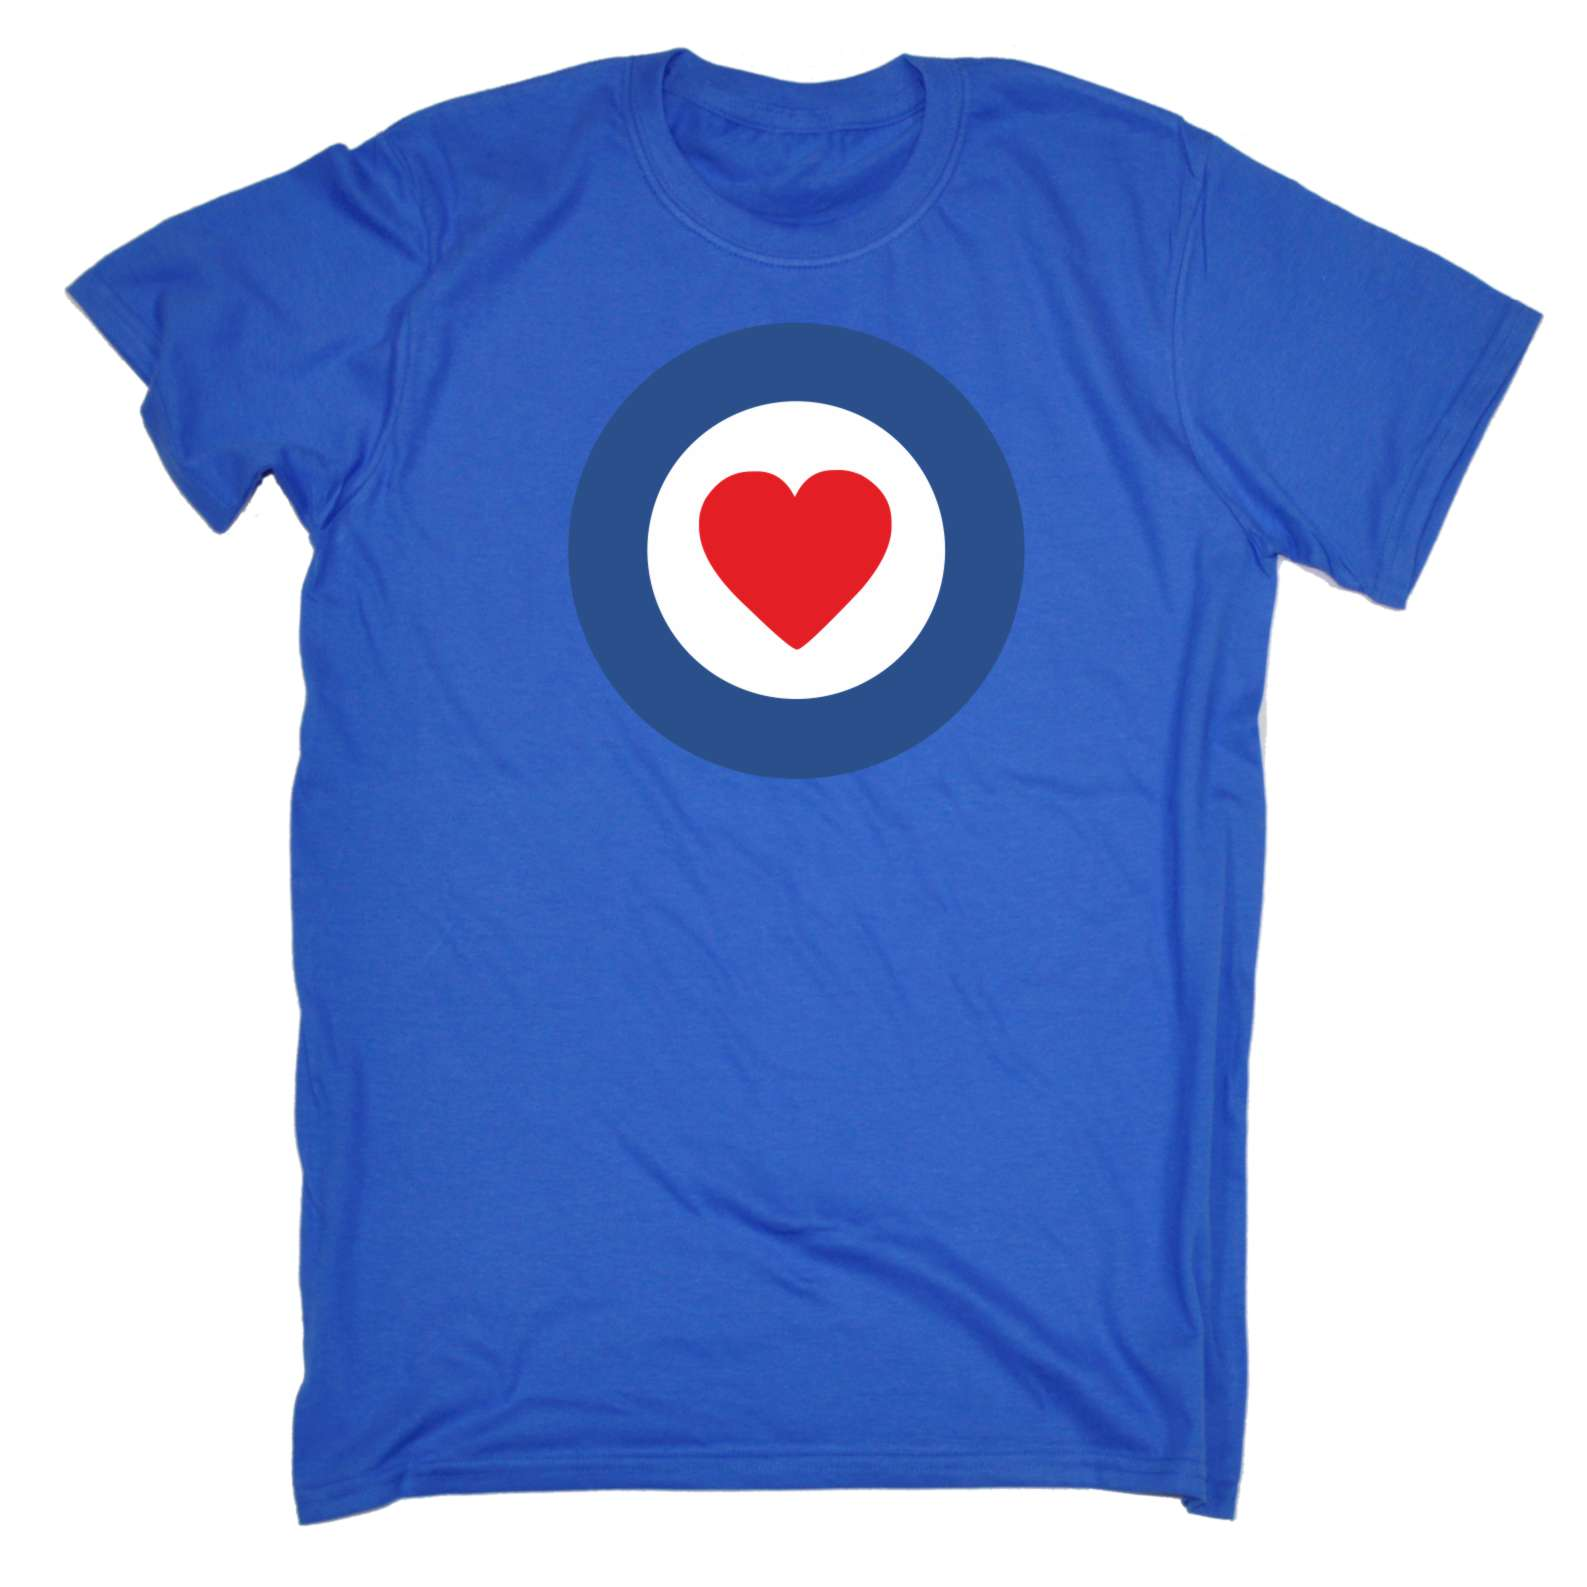 Funny T Shirt Target Heart Love Boyfriend Girlfriend